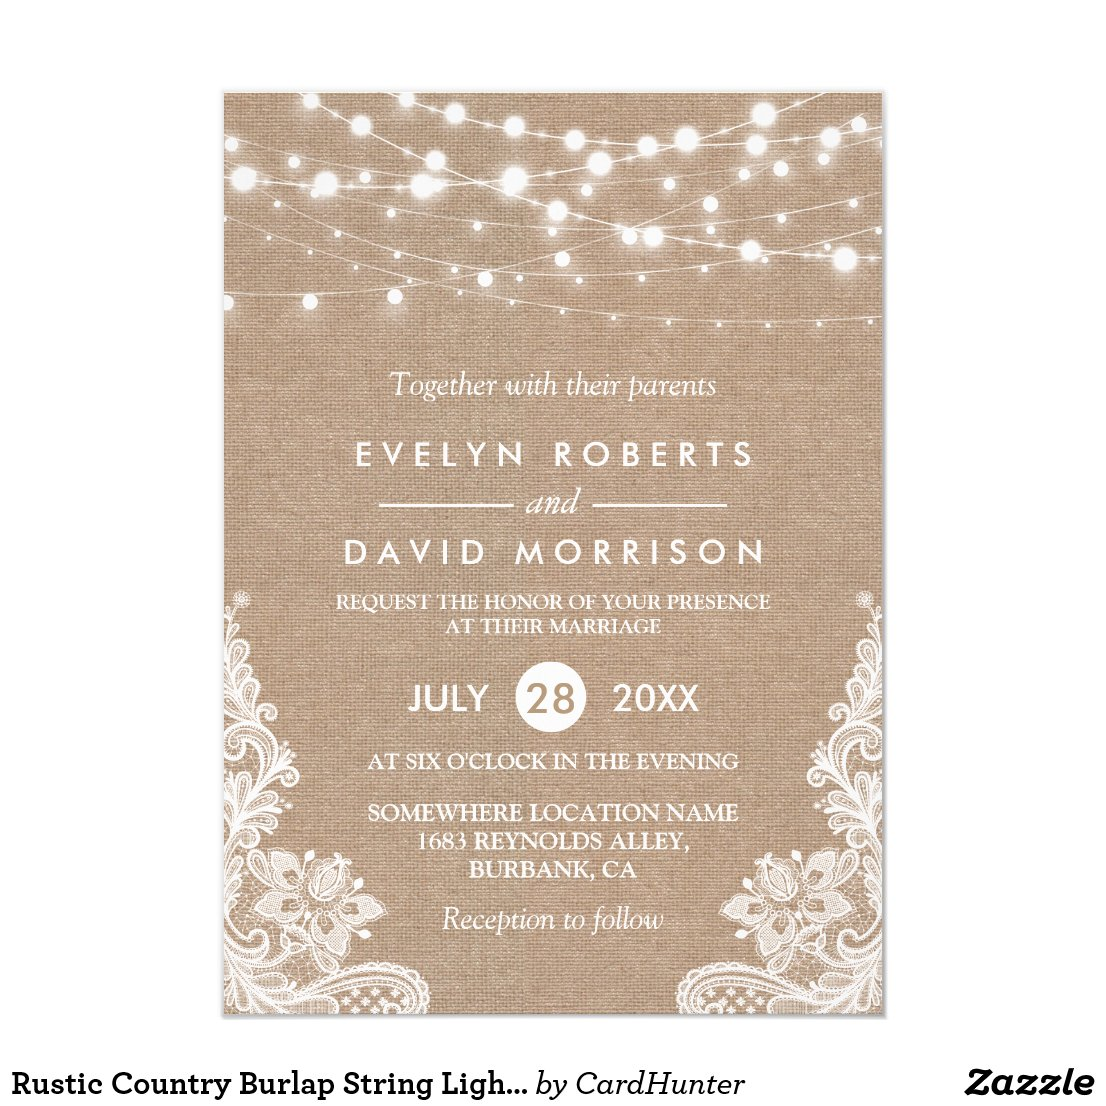 Rustic Country Burlap String Lights Lace Wedding Invitation